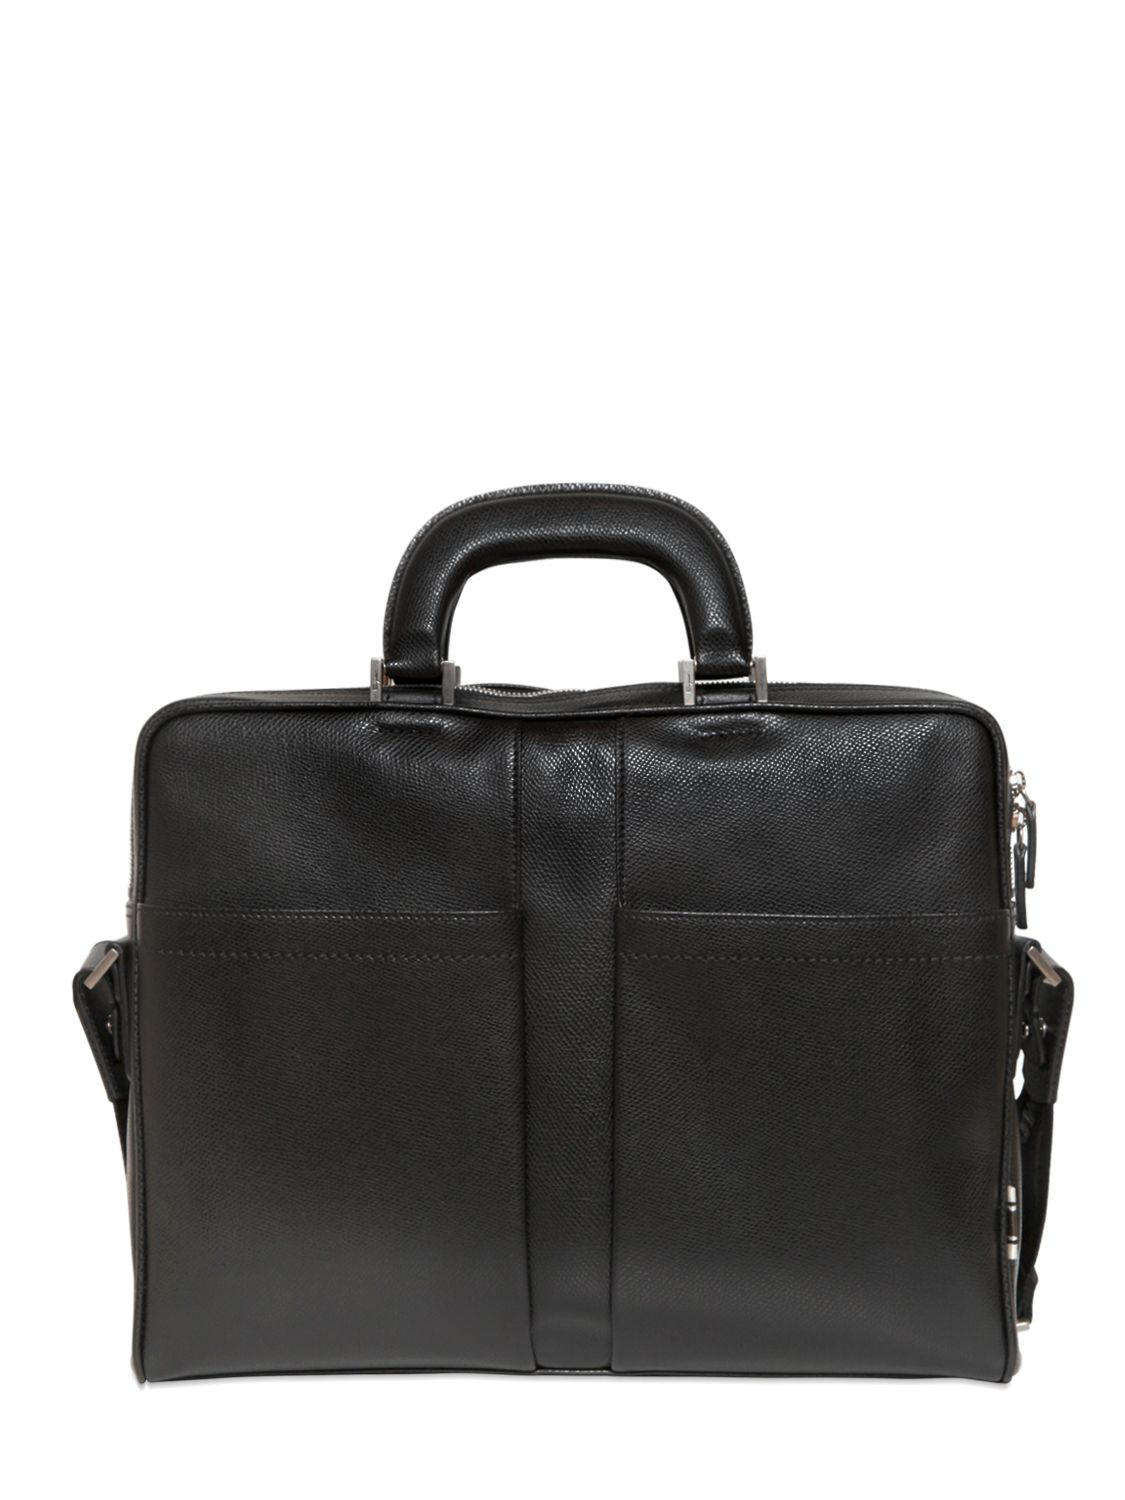 Ferragamo - Black Los Angeles Grained Leather Briefcase for Men - Lyst